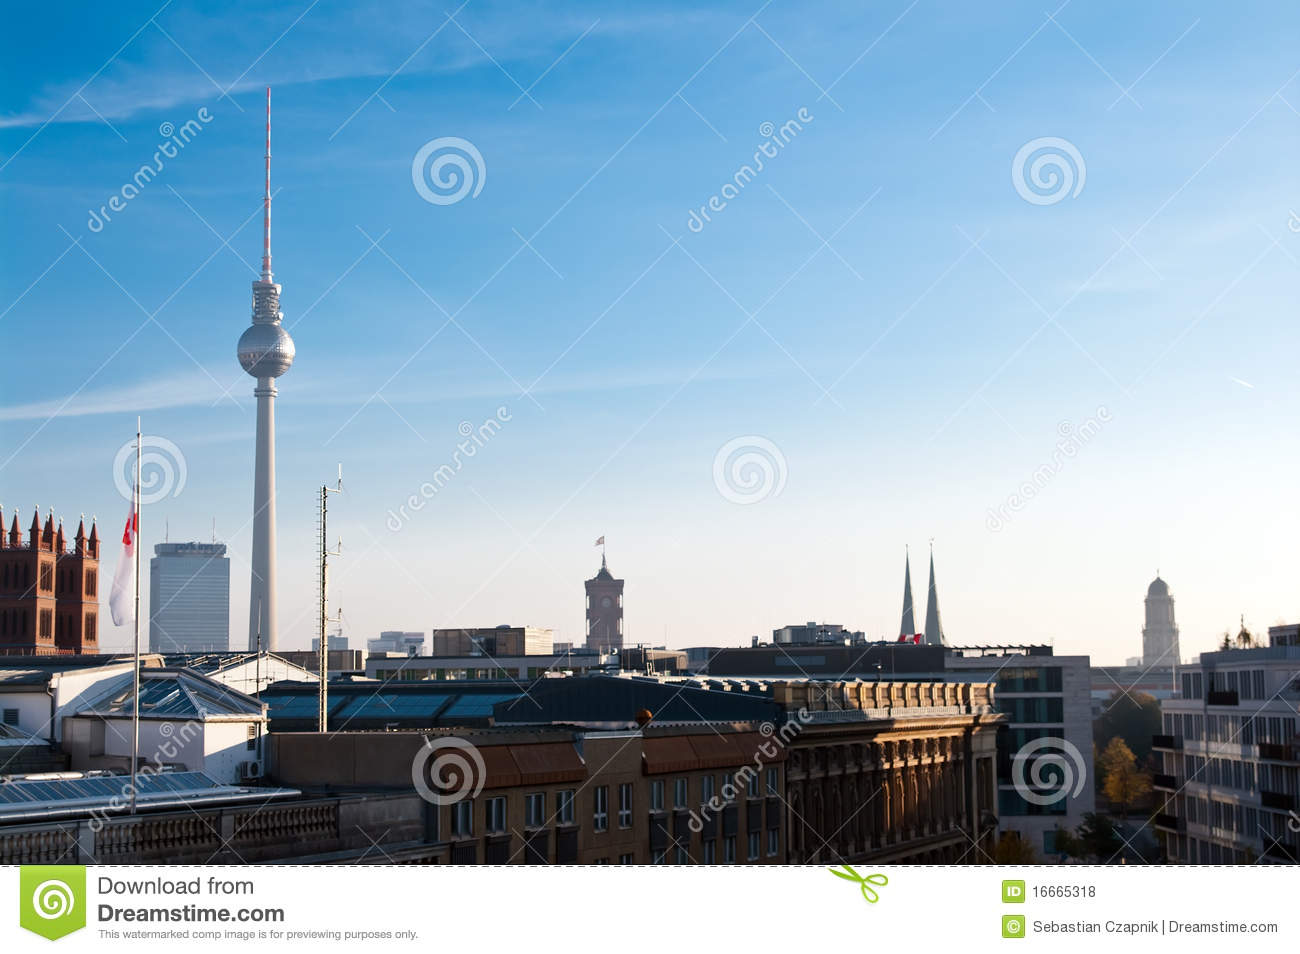 berlin skyline lizenzfreie stockfotos bild 16665318. Black Bedroom Furniture Sets. Home Design Ideas